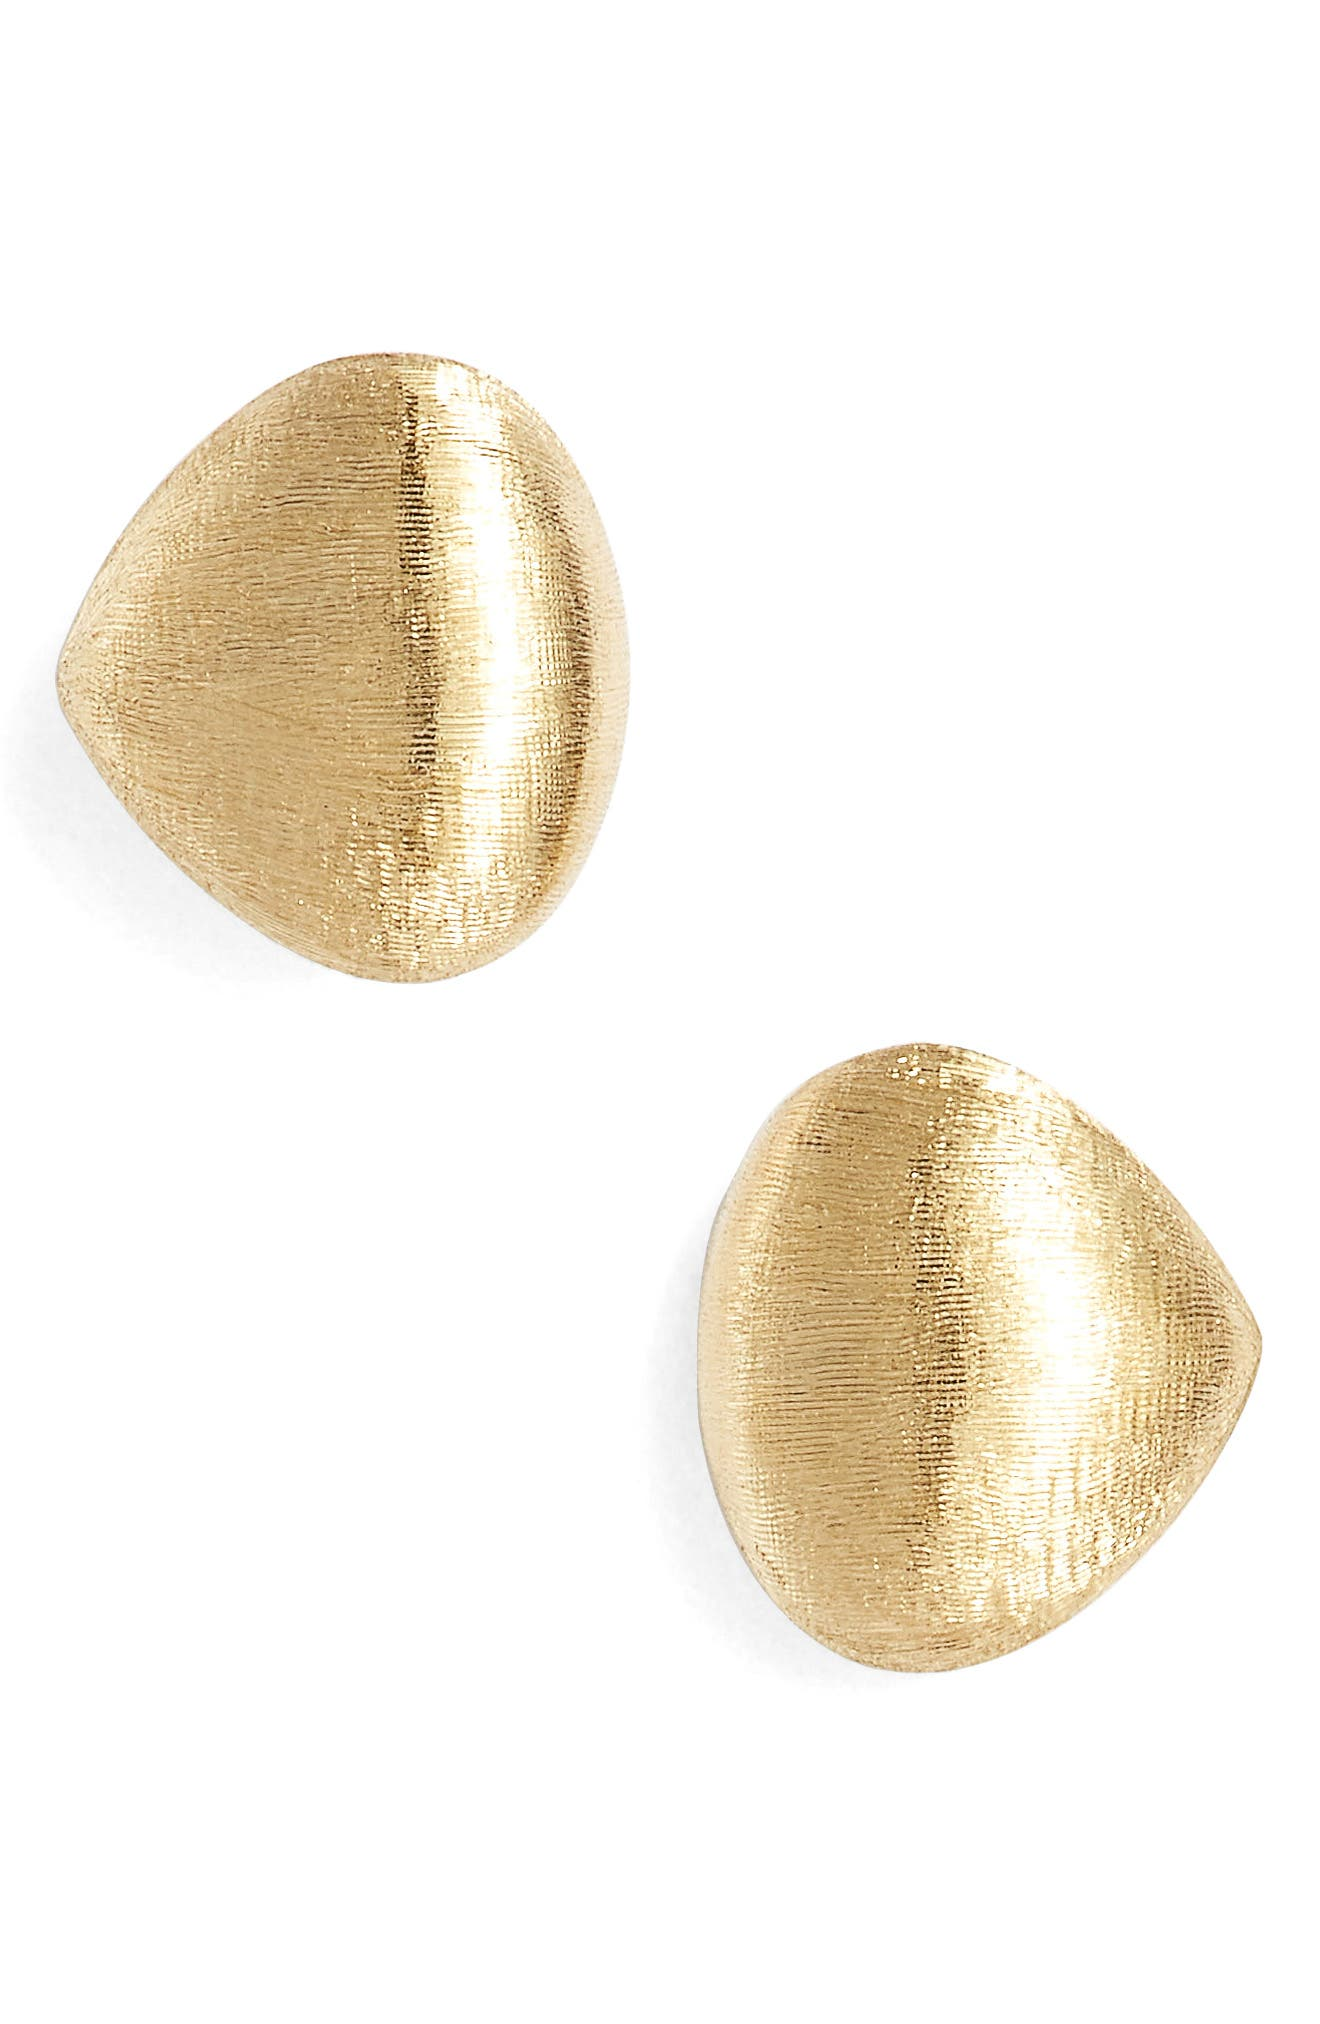 Paradise Stud Earrings,                         Main,                         color, YELLOW GOLD